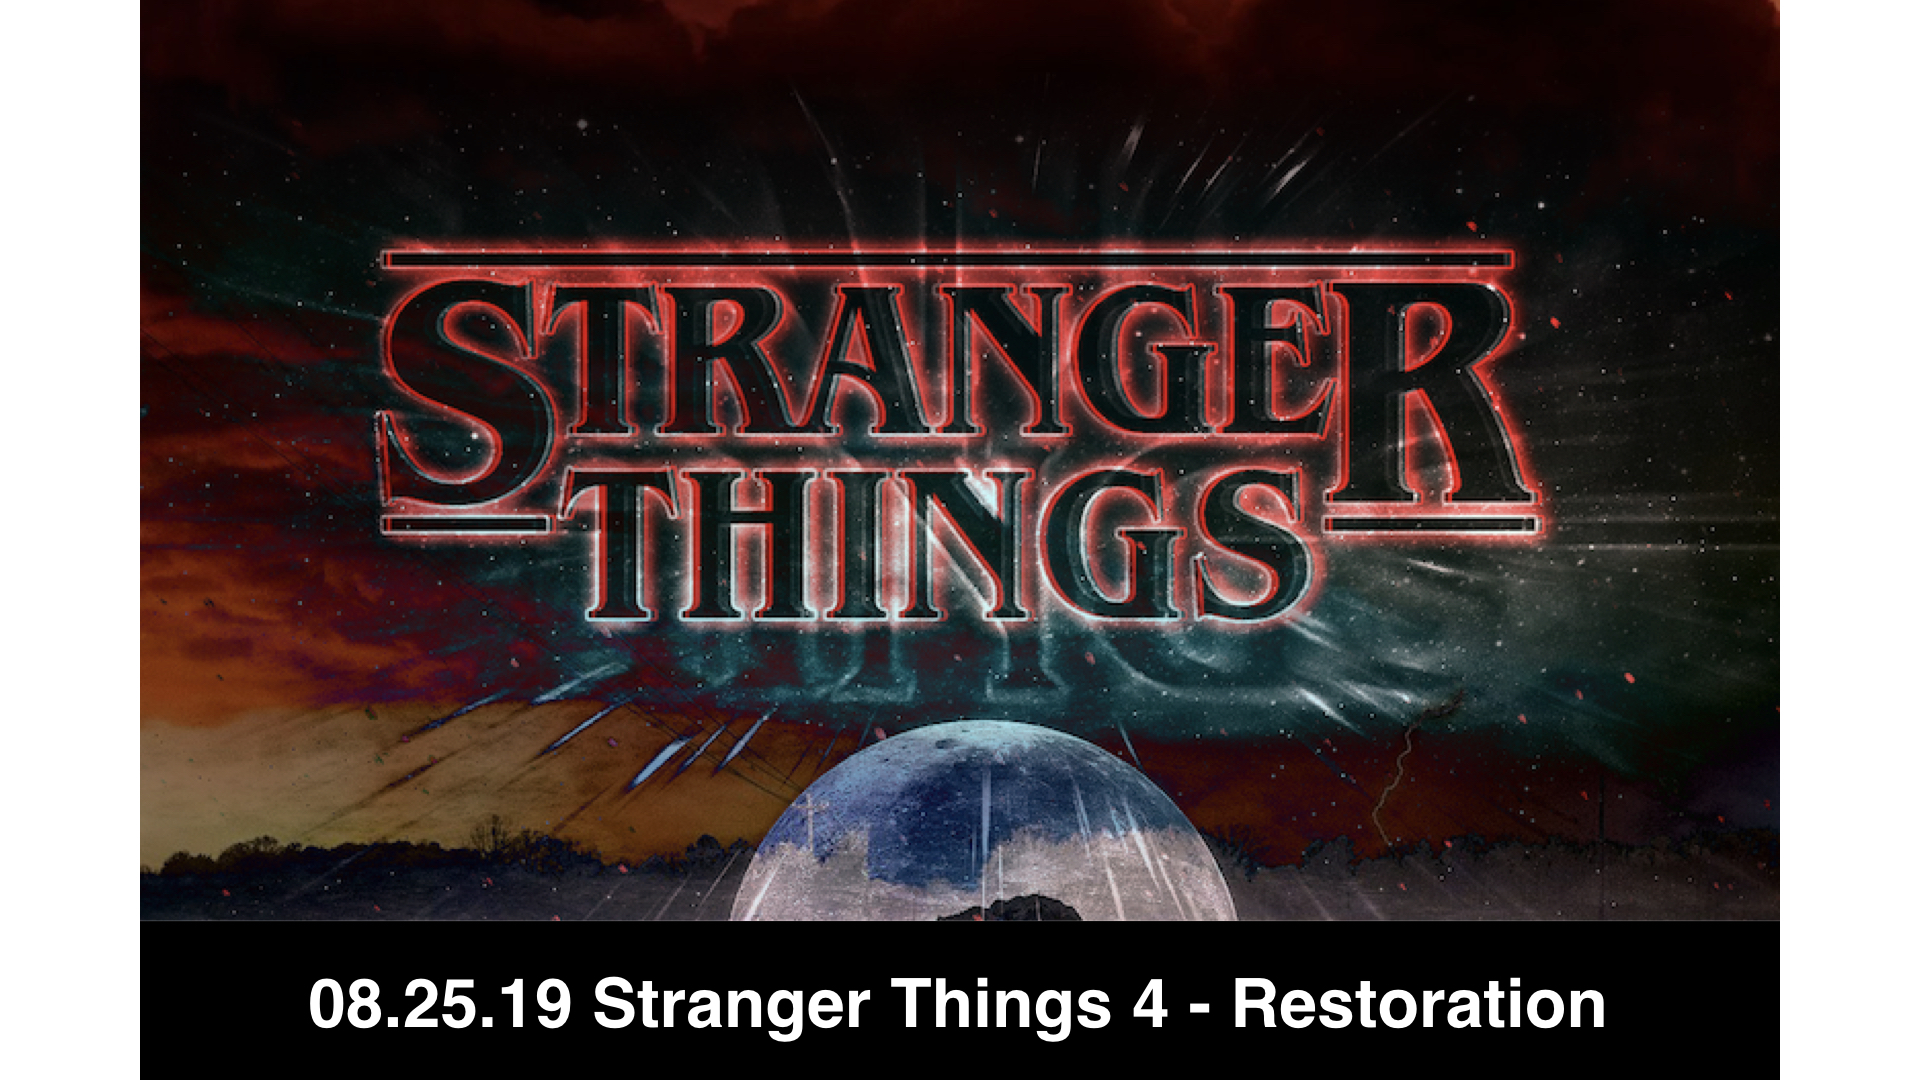 08.25.19 Stranger Things 4 - Restoration